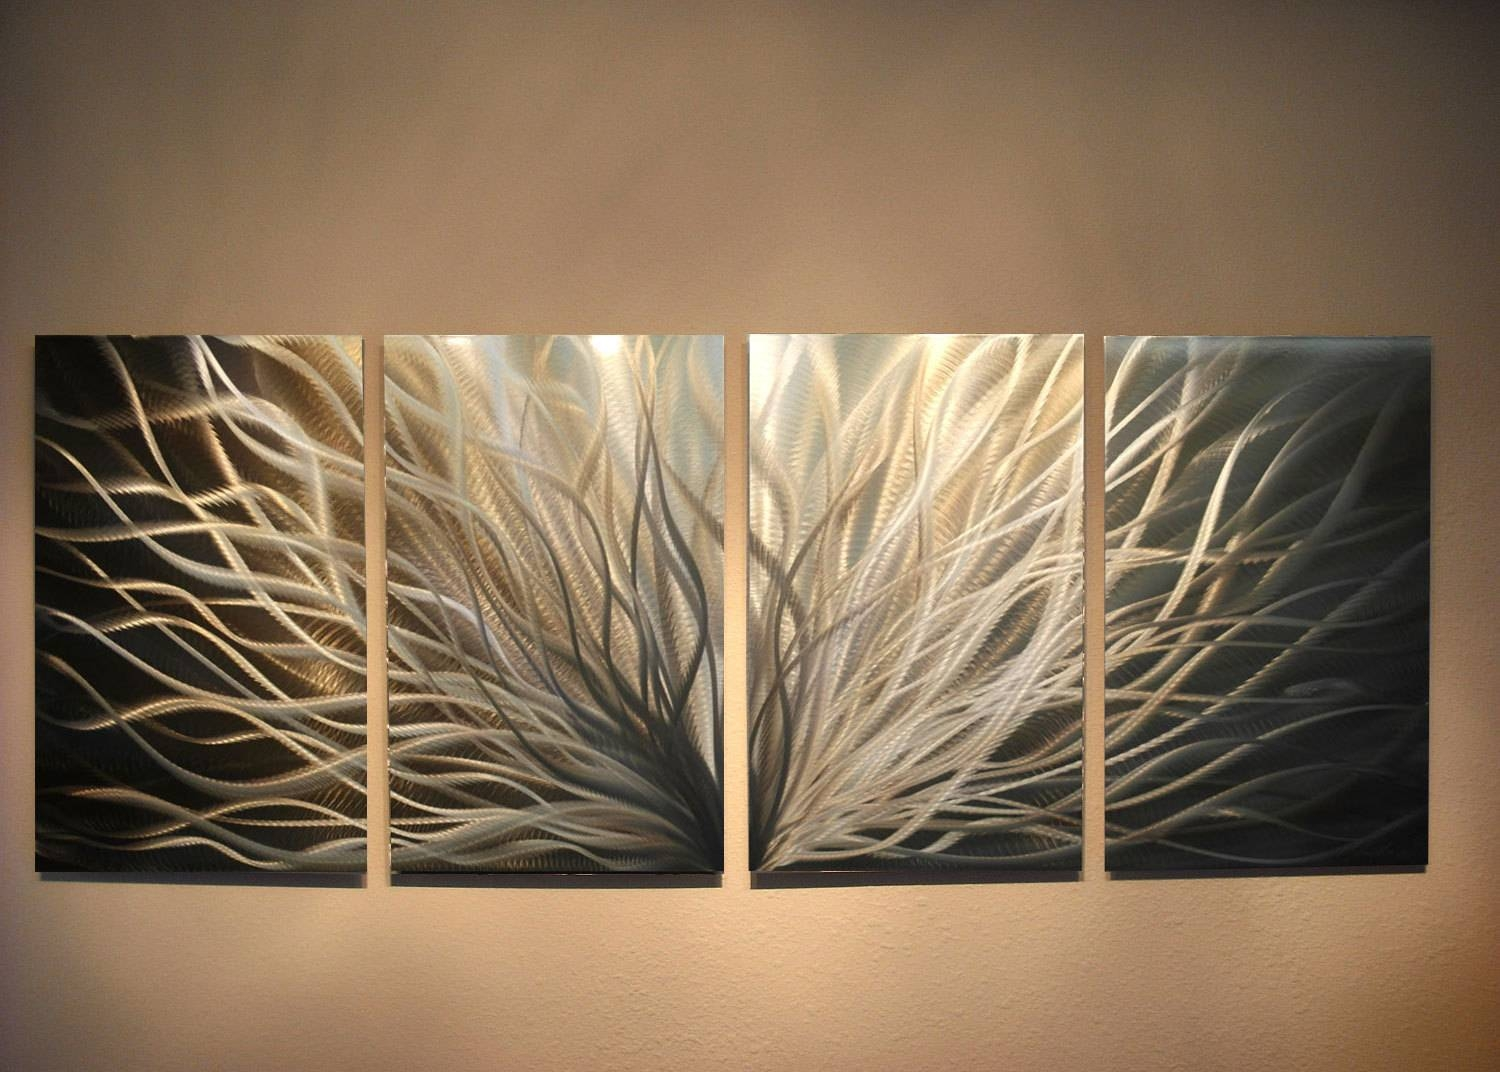 Metal Art Wall Art Decor Aluminum Abstract Contemporary Modern Intended For Current Abstract Metal Wall Art (View 3 of 20)